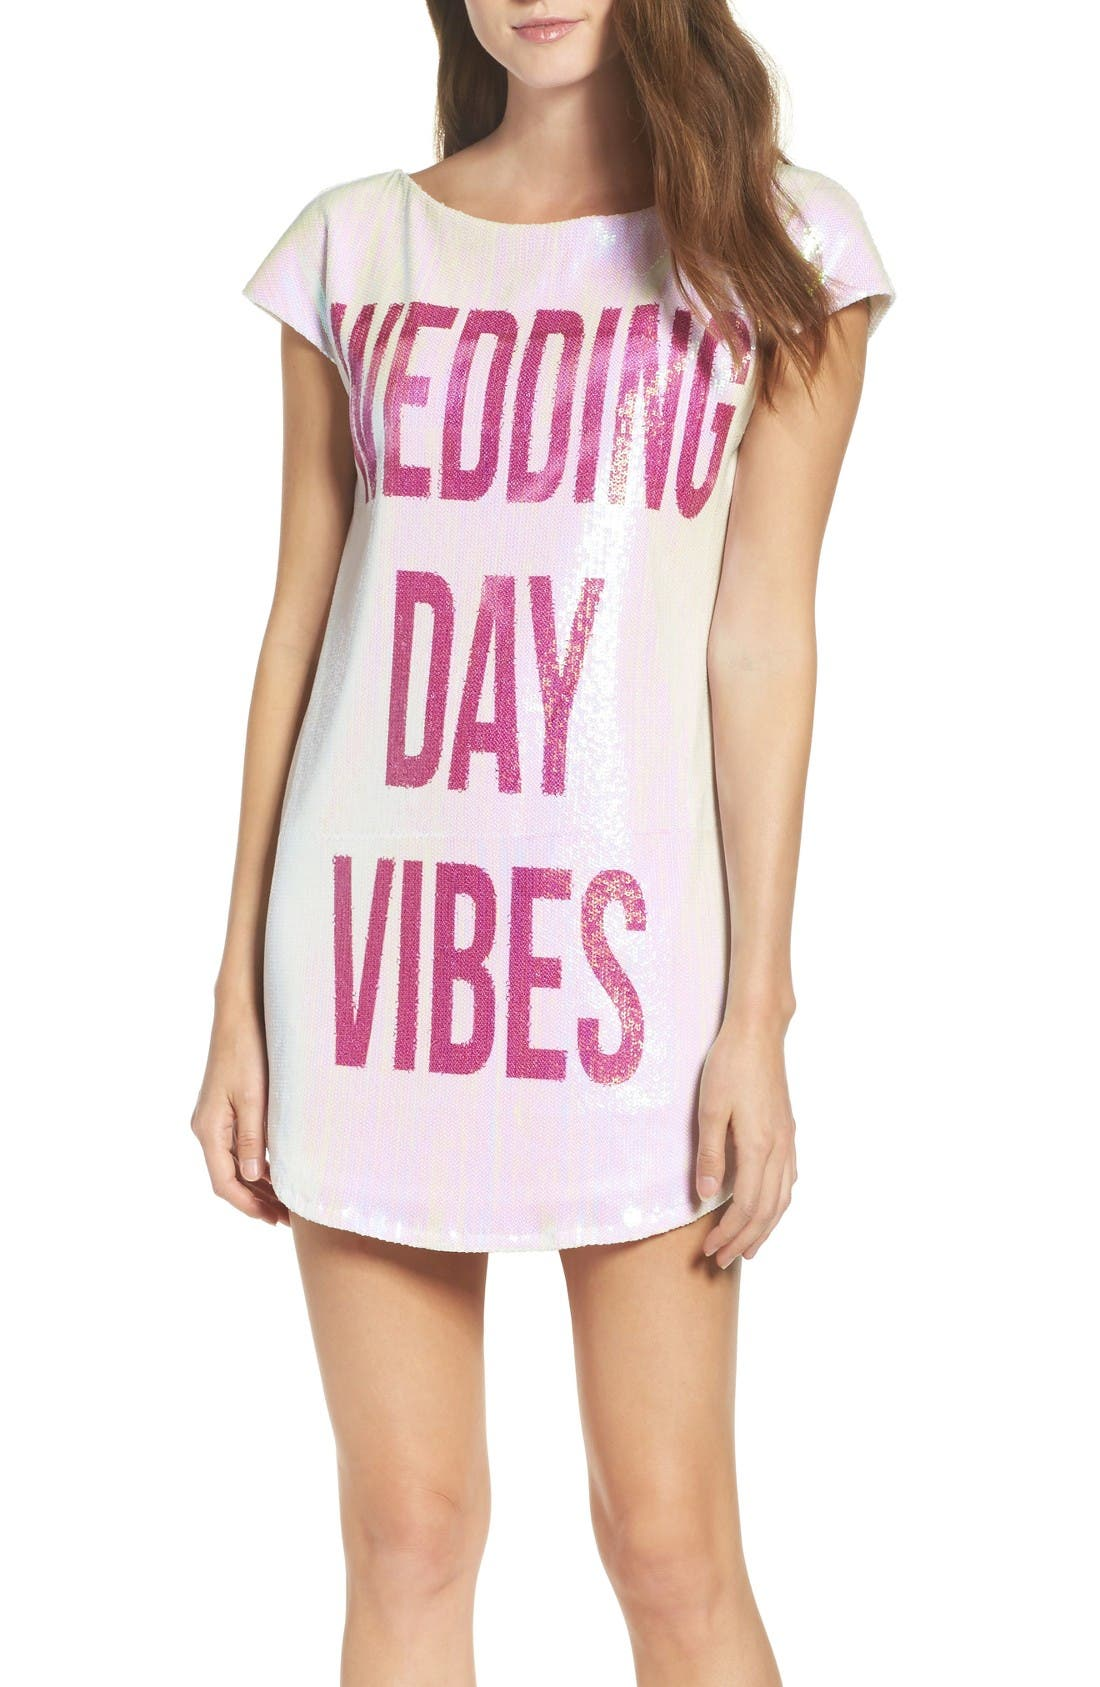 hayley paige wedding day vibes dress nordstrom Wedding Day Vibes Hayley Paige Wedding Day Vibes Hayley Paige #2 hayley paige wedding day vibes dress